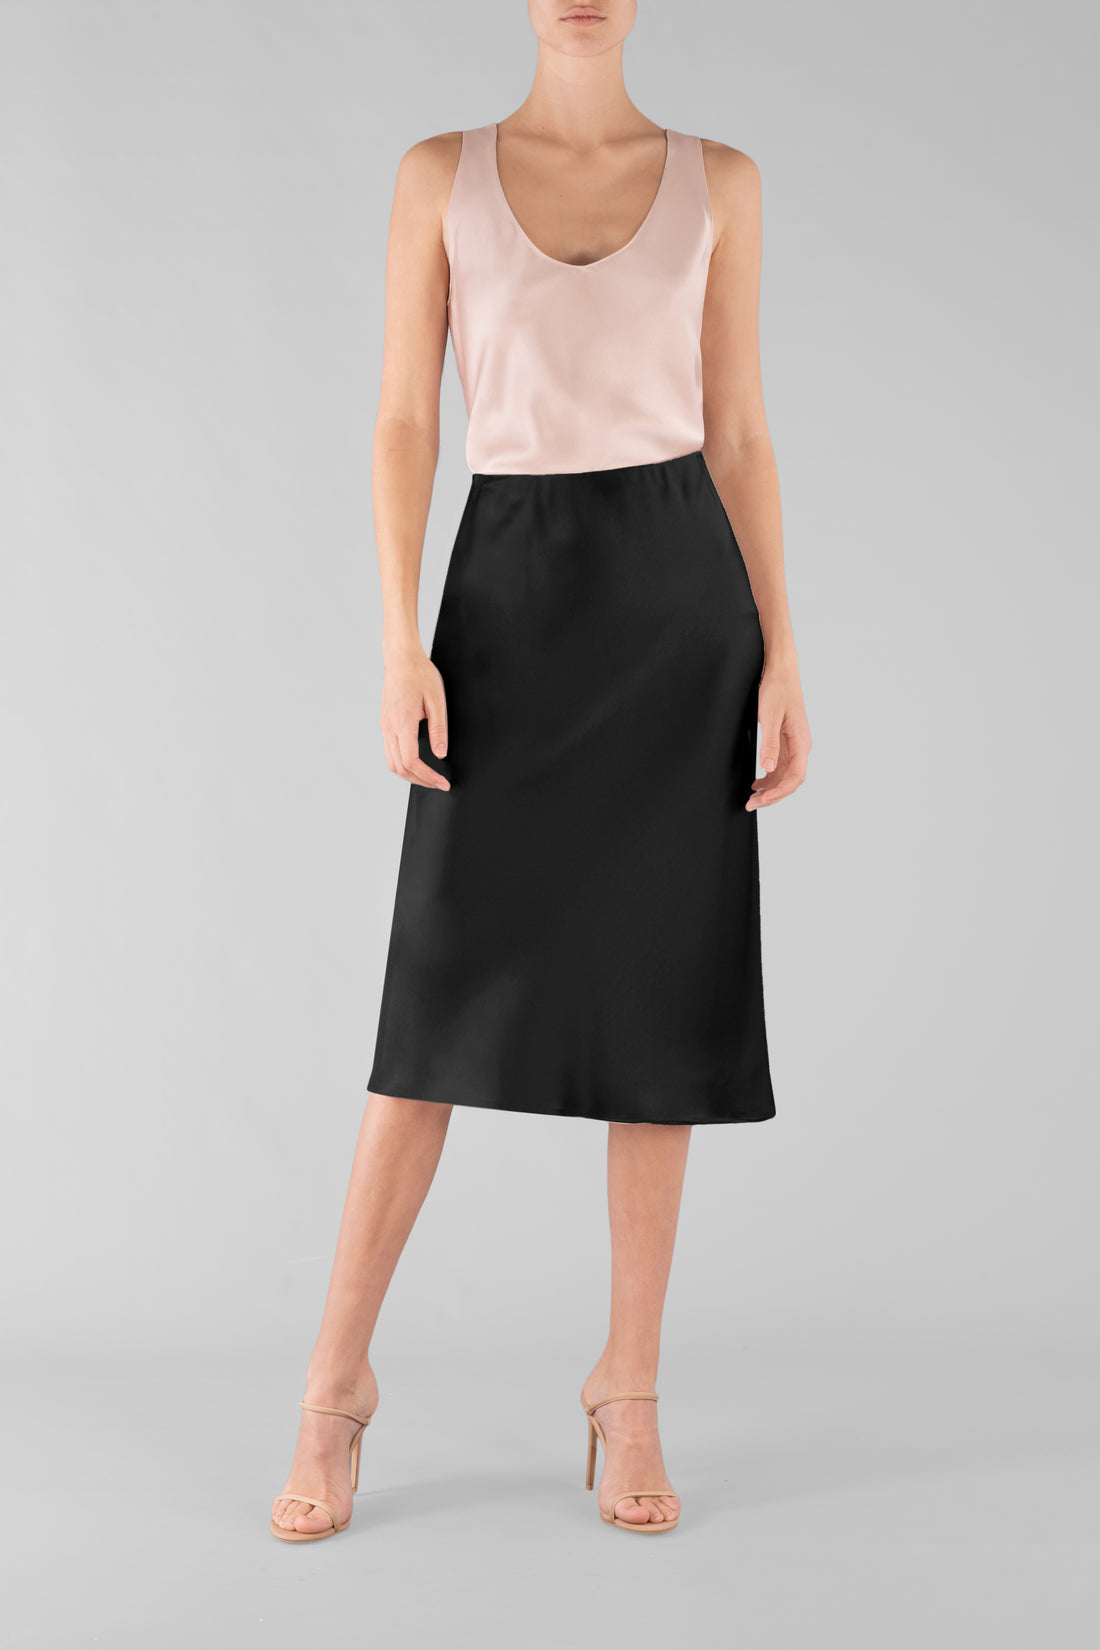 THE FREEDOM OF MOVEMENT BIAS SKIRT